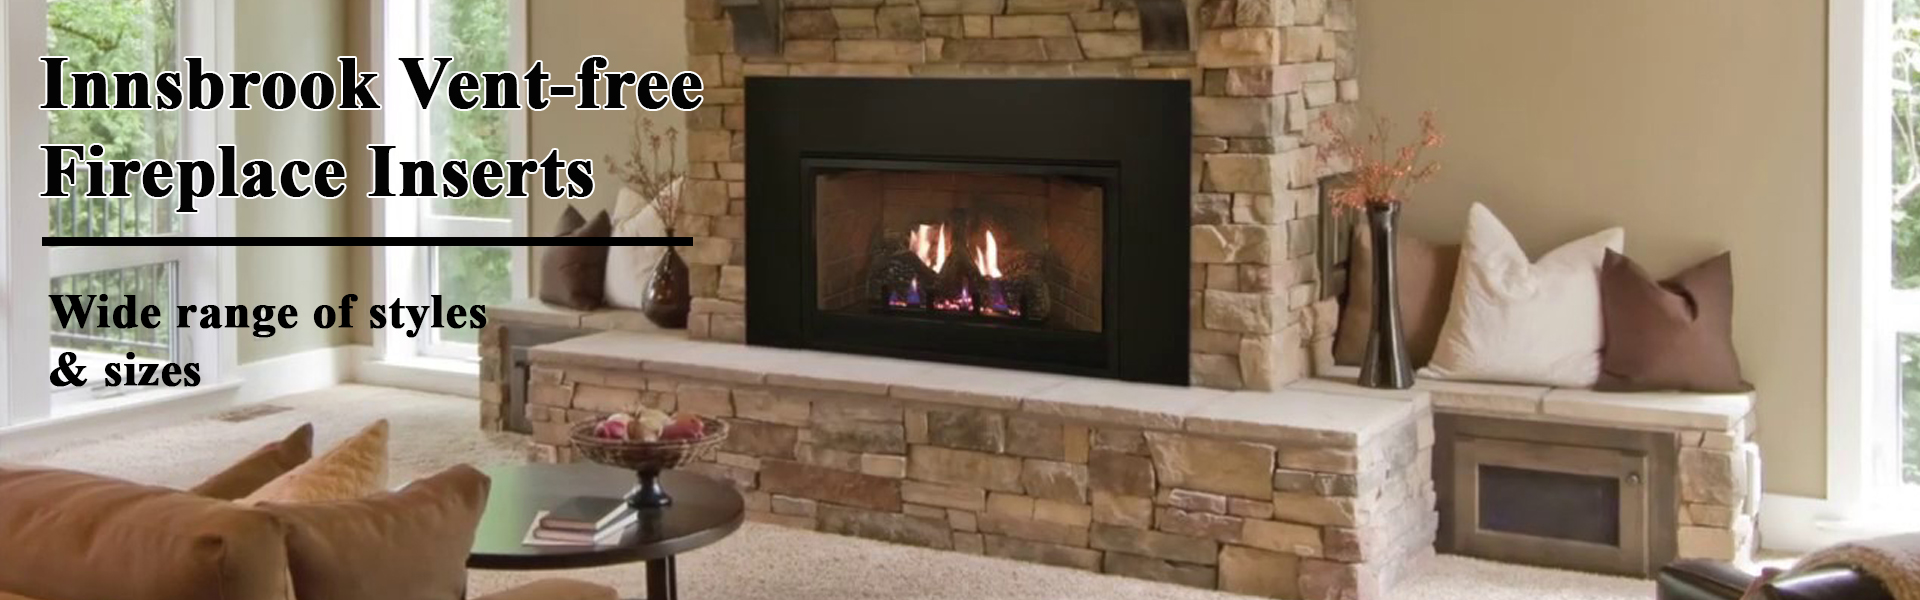 vent free fireplace inserts